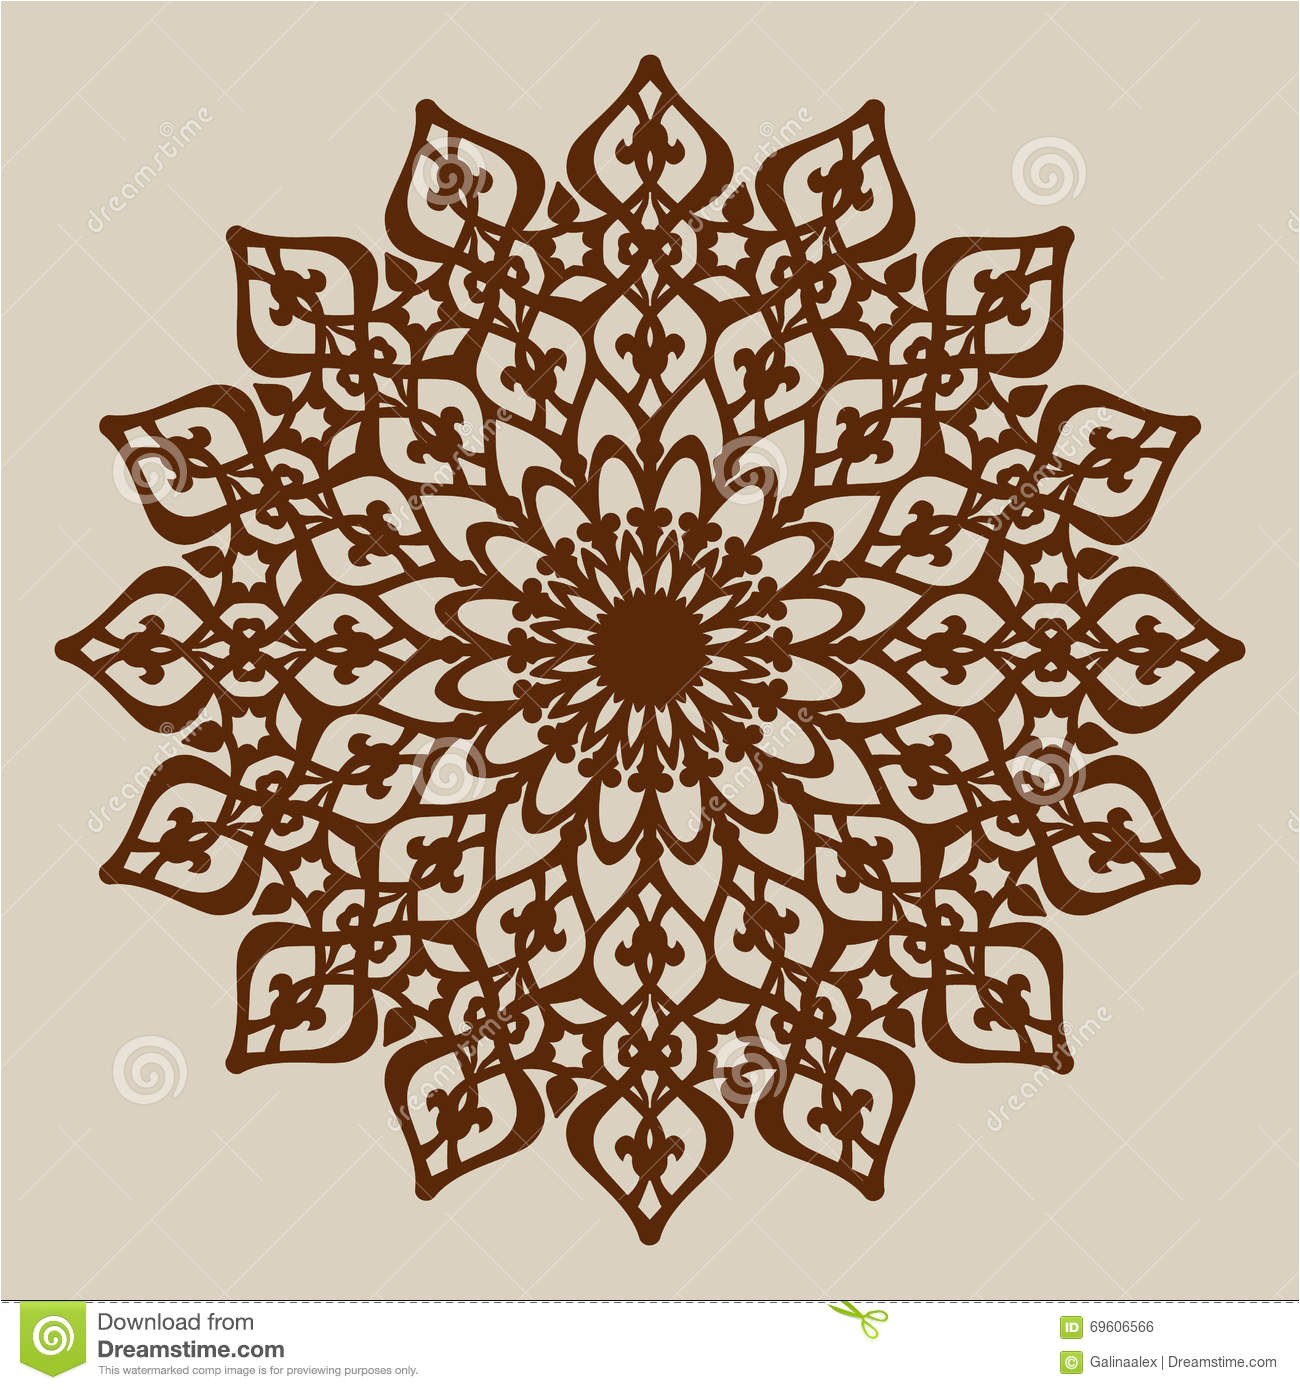 stock illustration template mandala pattern decorative rosette picture suitable printing engraving laser cutting paper wood metal image69606566